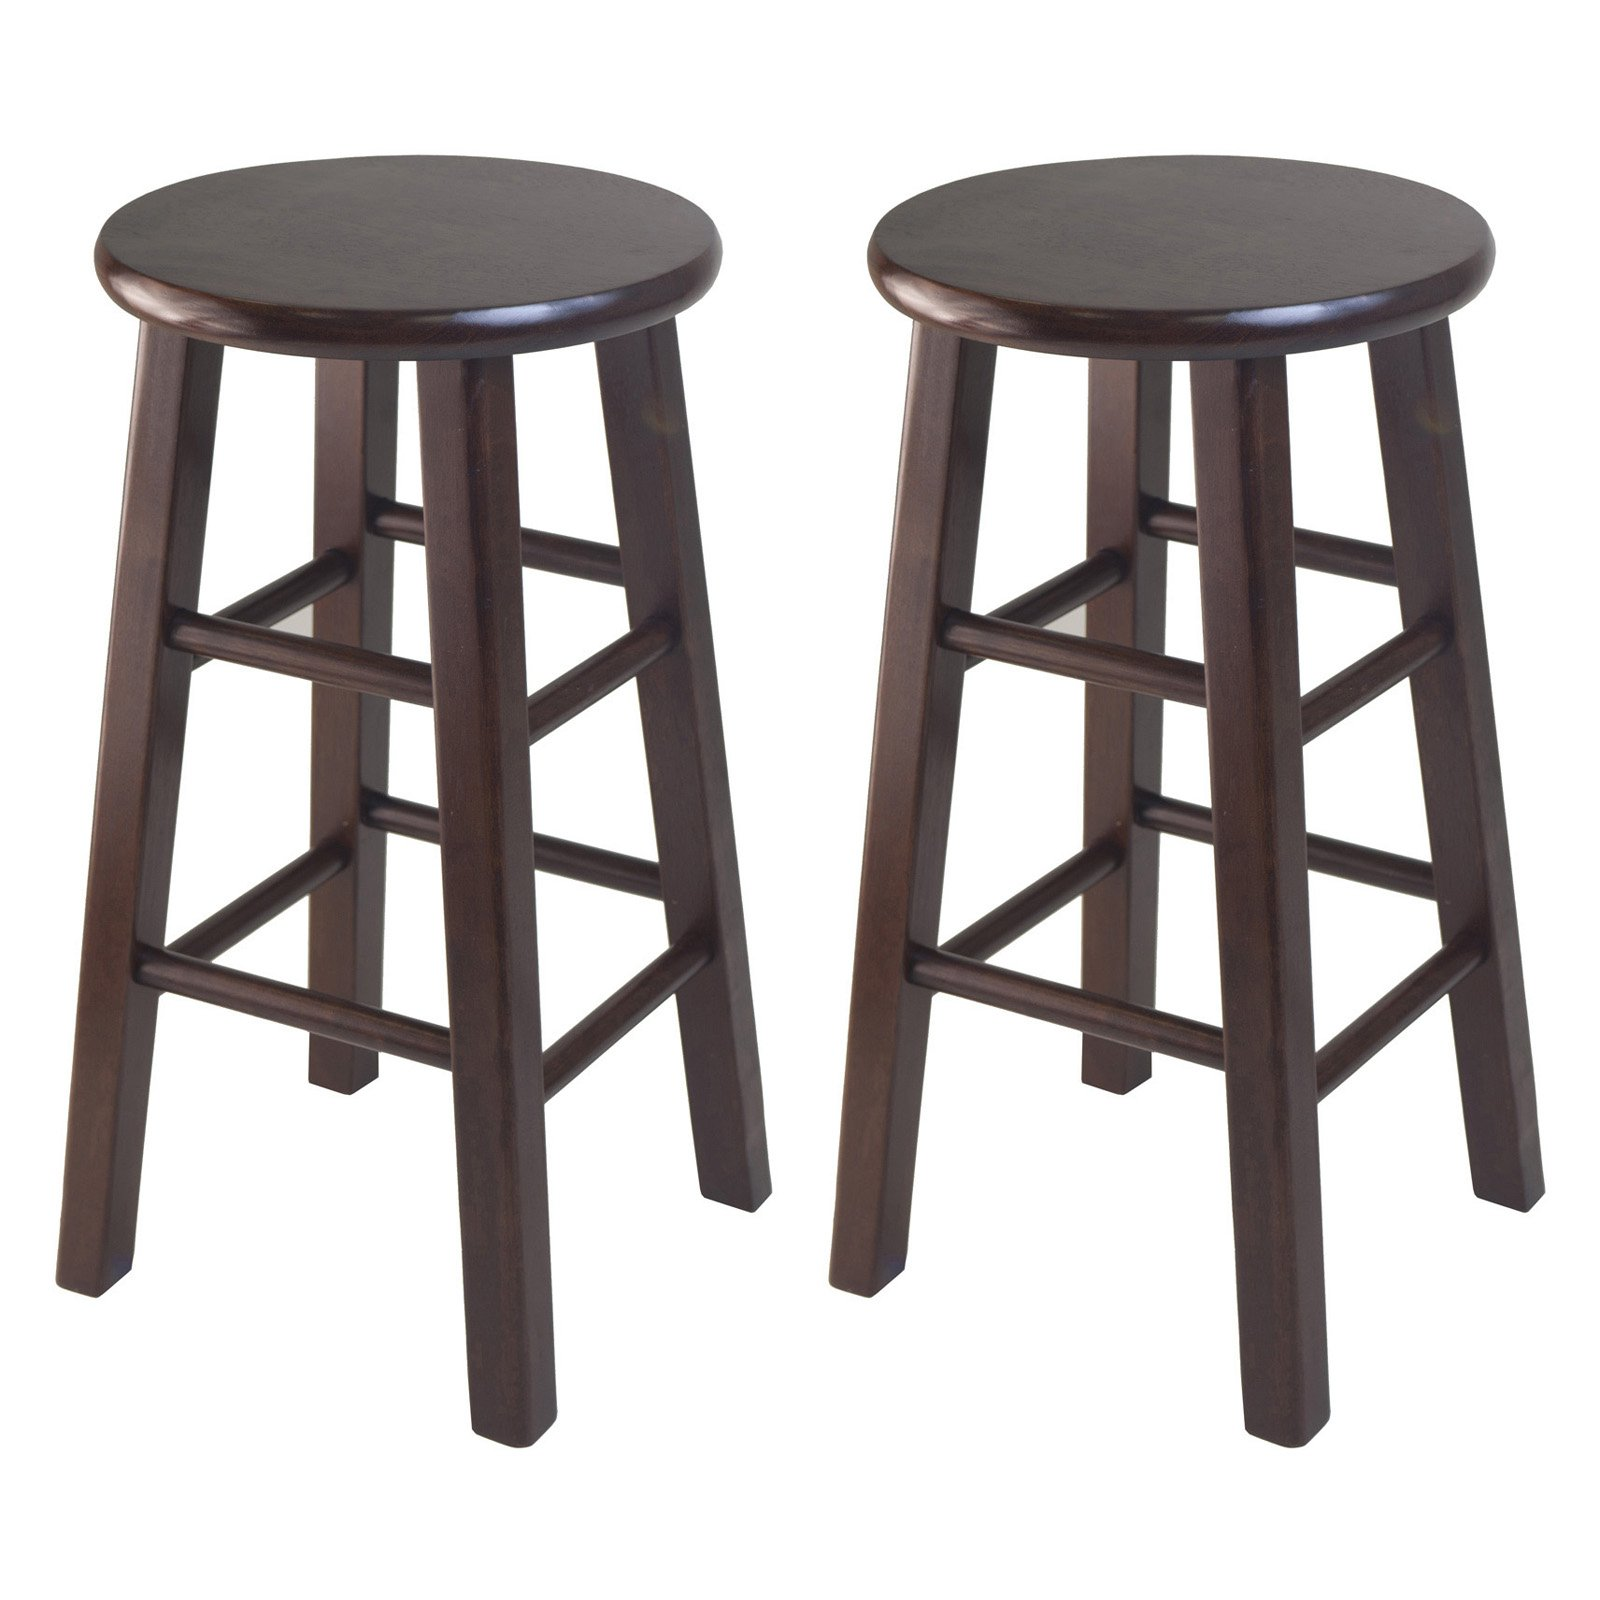 Winsome 24 Inch Square Leg Counter Stool Set Of 2 Counter